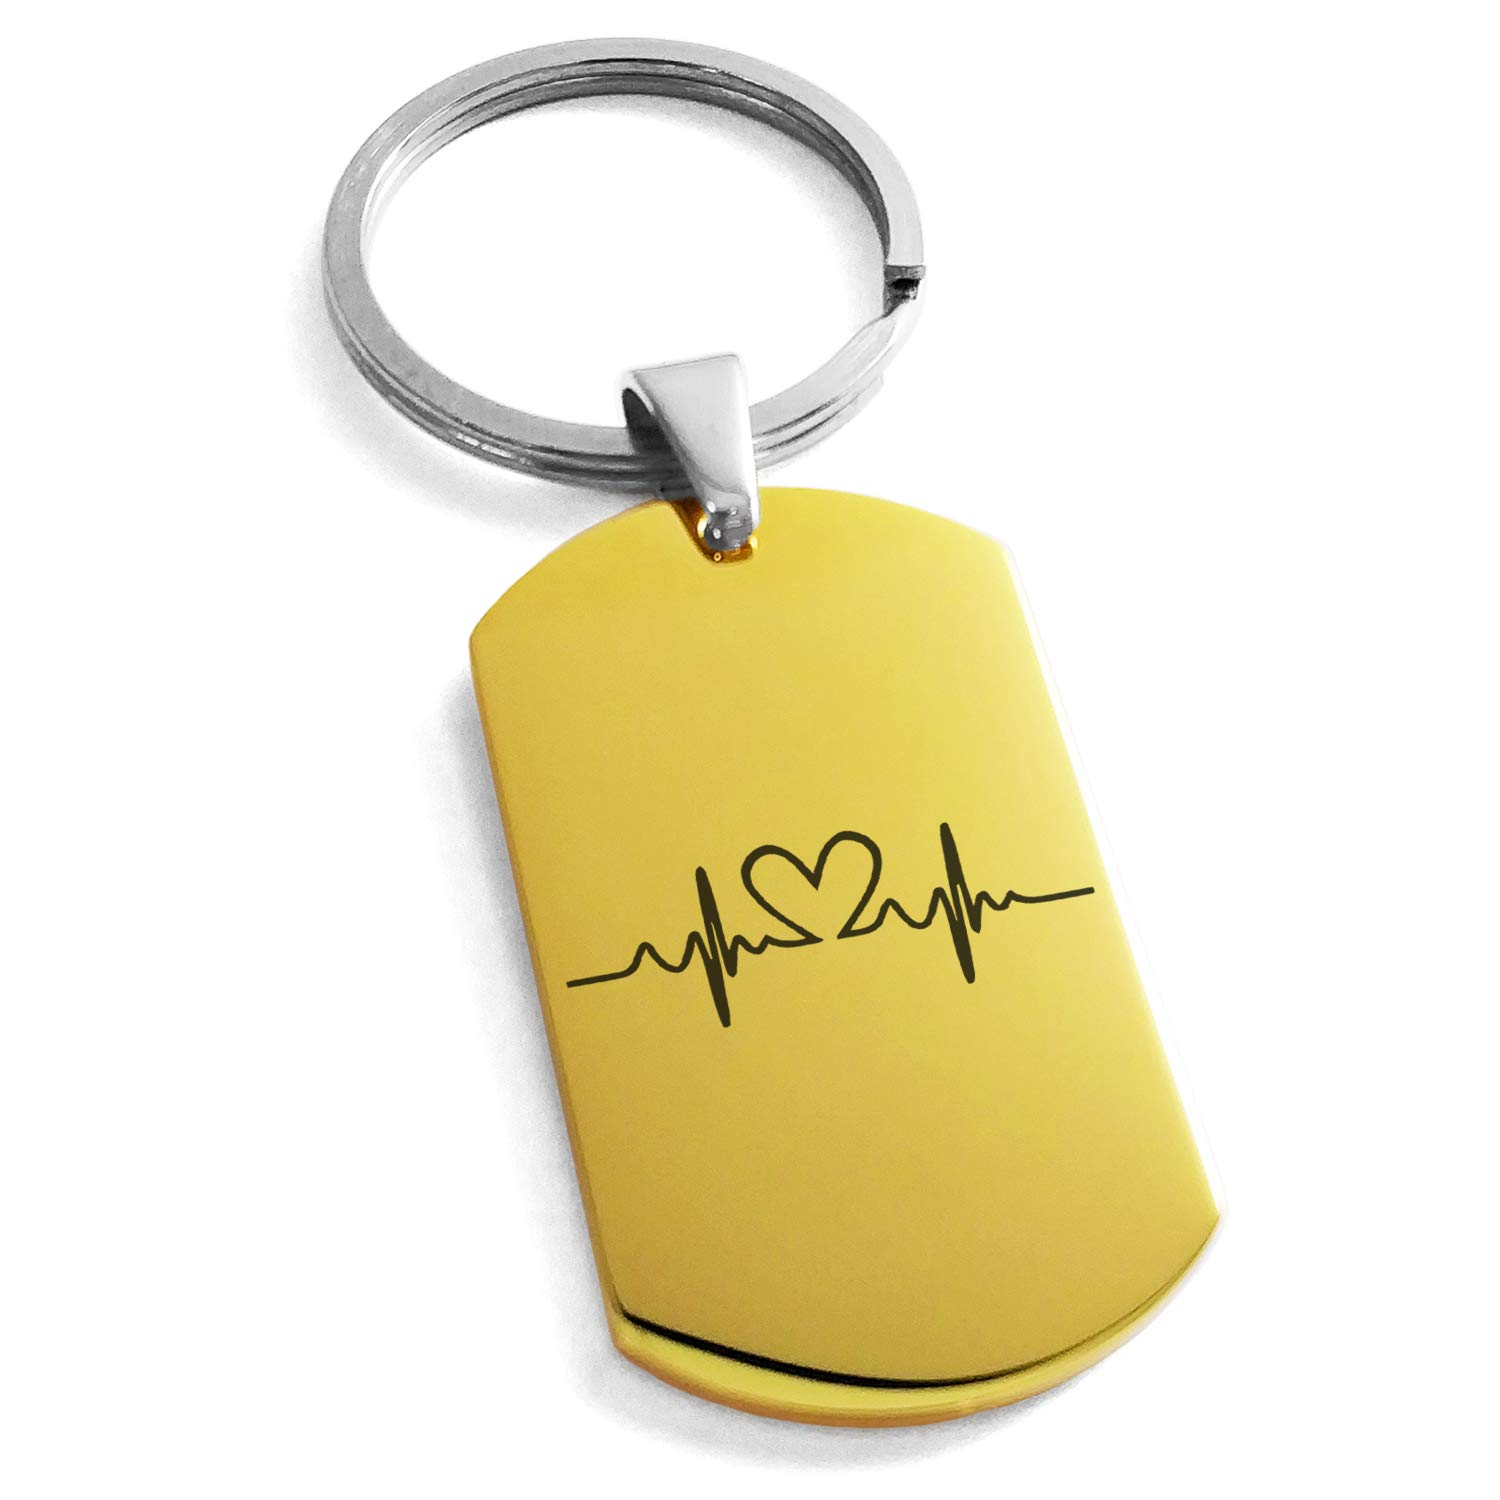 Tioneer Gold Plated Stainless Steel Love Heart Lifeline Engraved Dog Tag Keychain Keyring by Tioneer (Image #1)